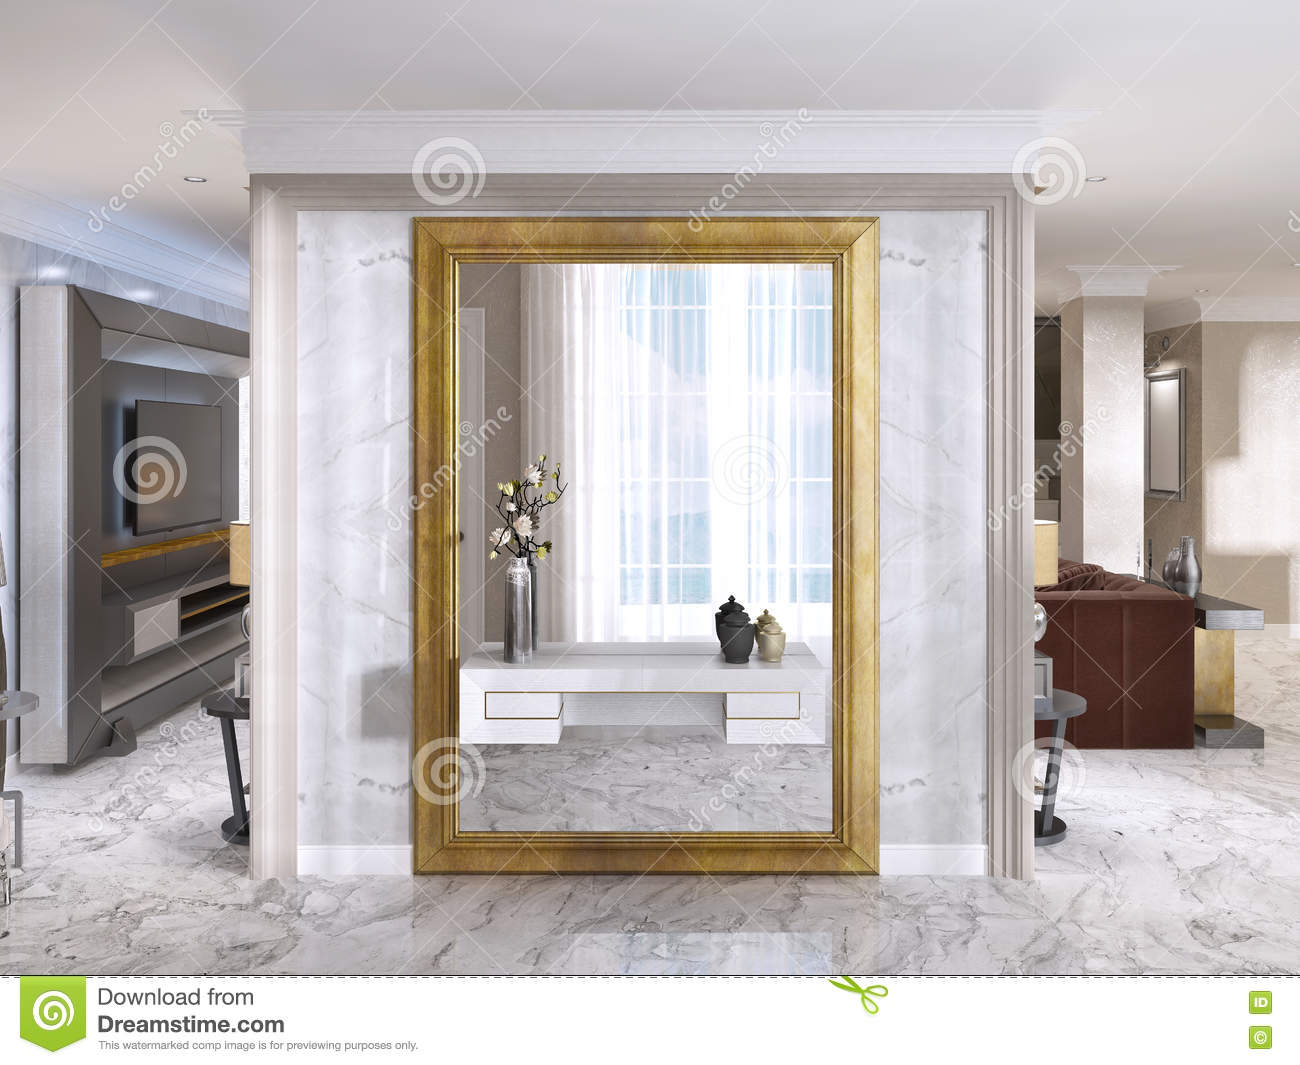 hall d 39 entr e luxueux d 39 art d co avec un grand miroir de